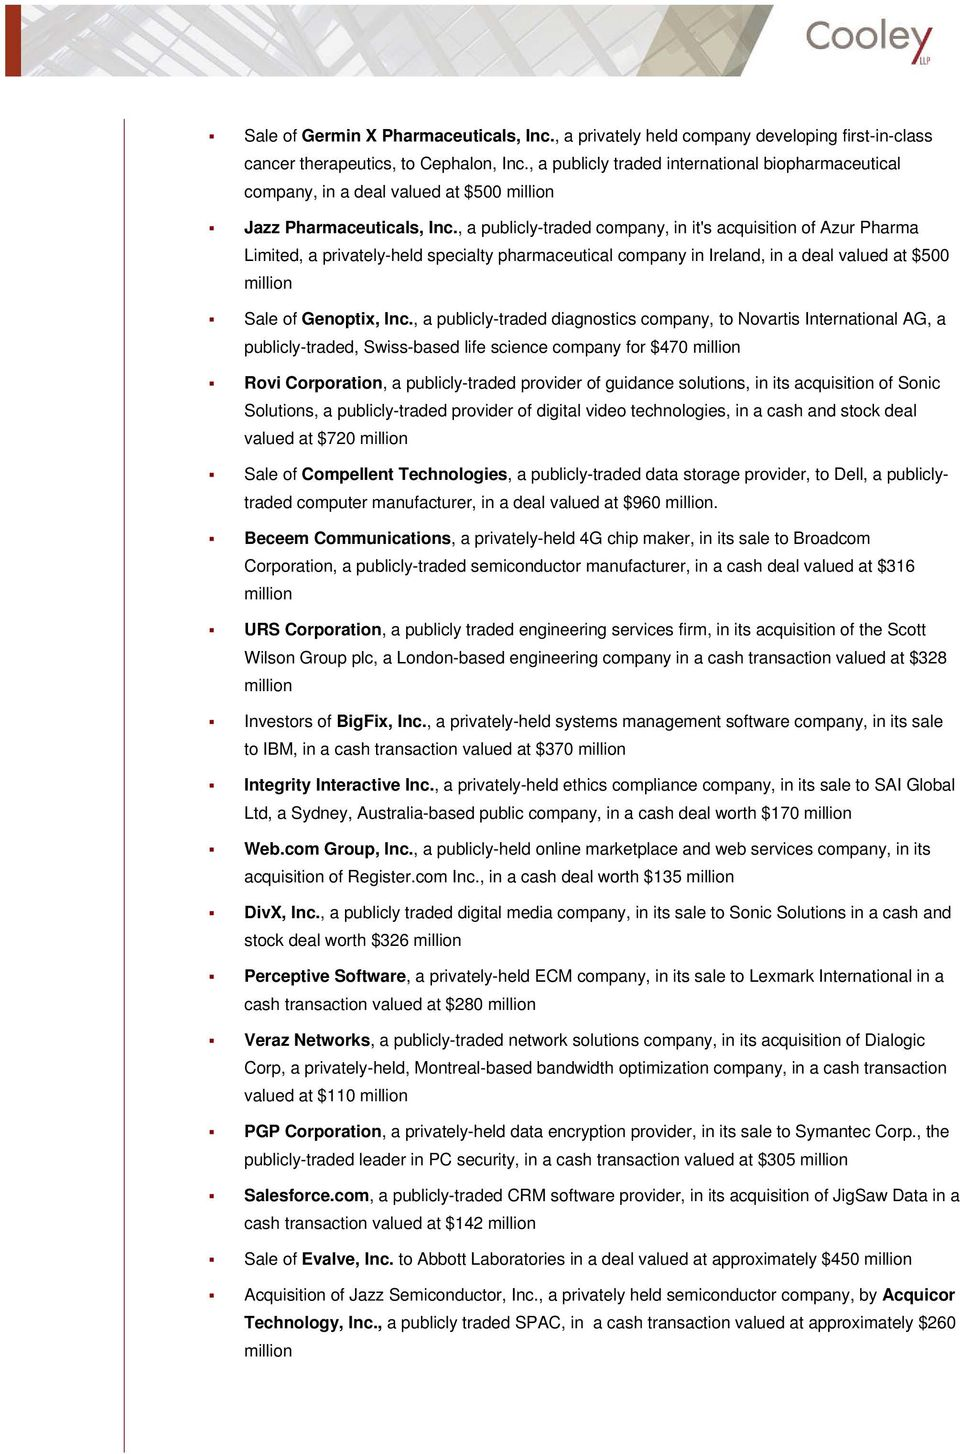 SIGNIFICANT TRANSACTIONS VALUED AT MORE THAN $1 BILLION - PDF